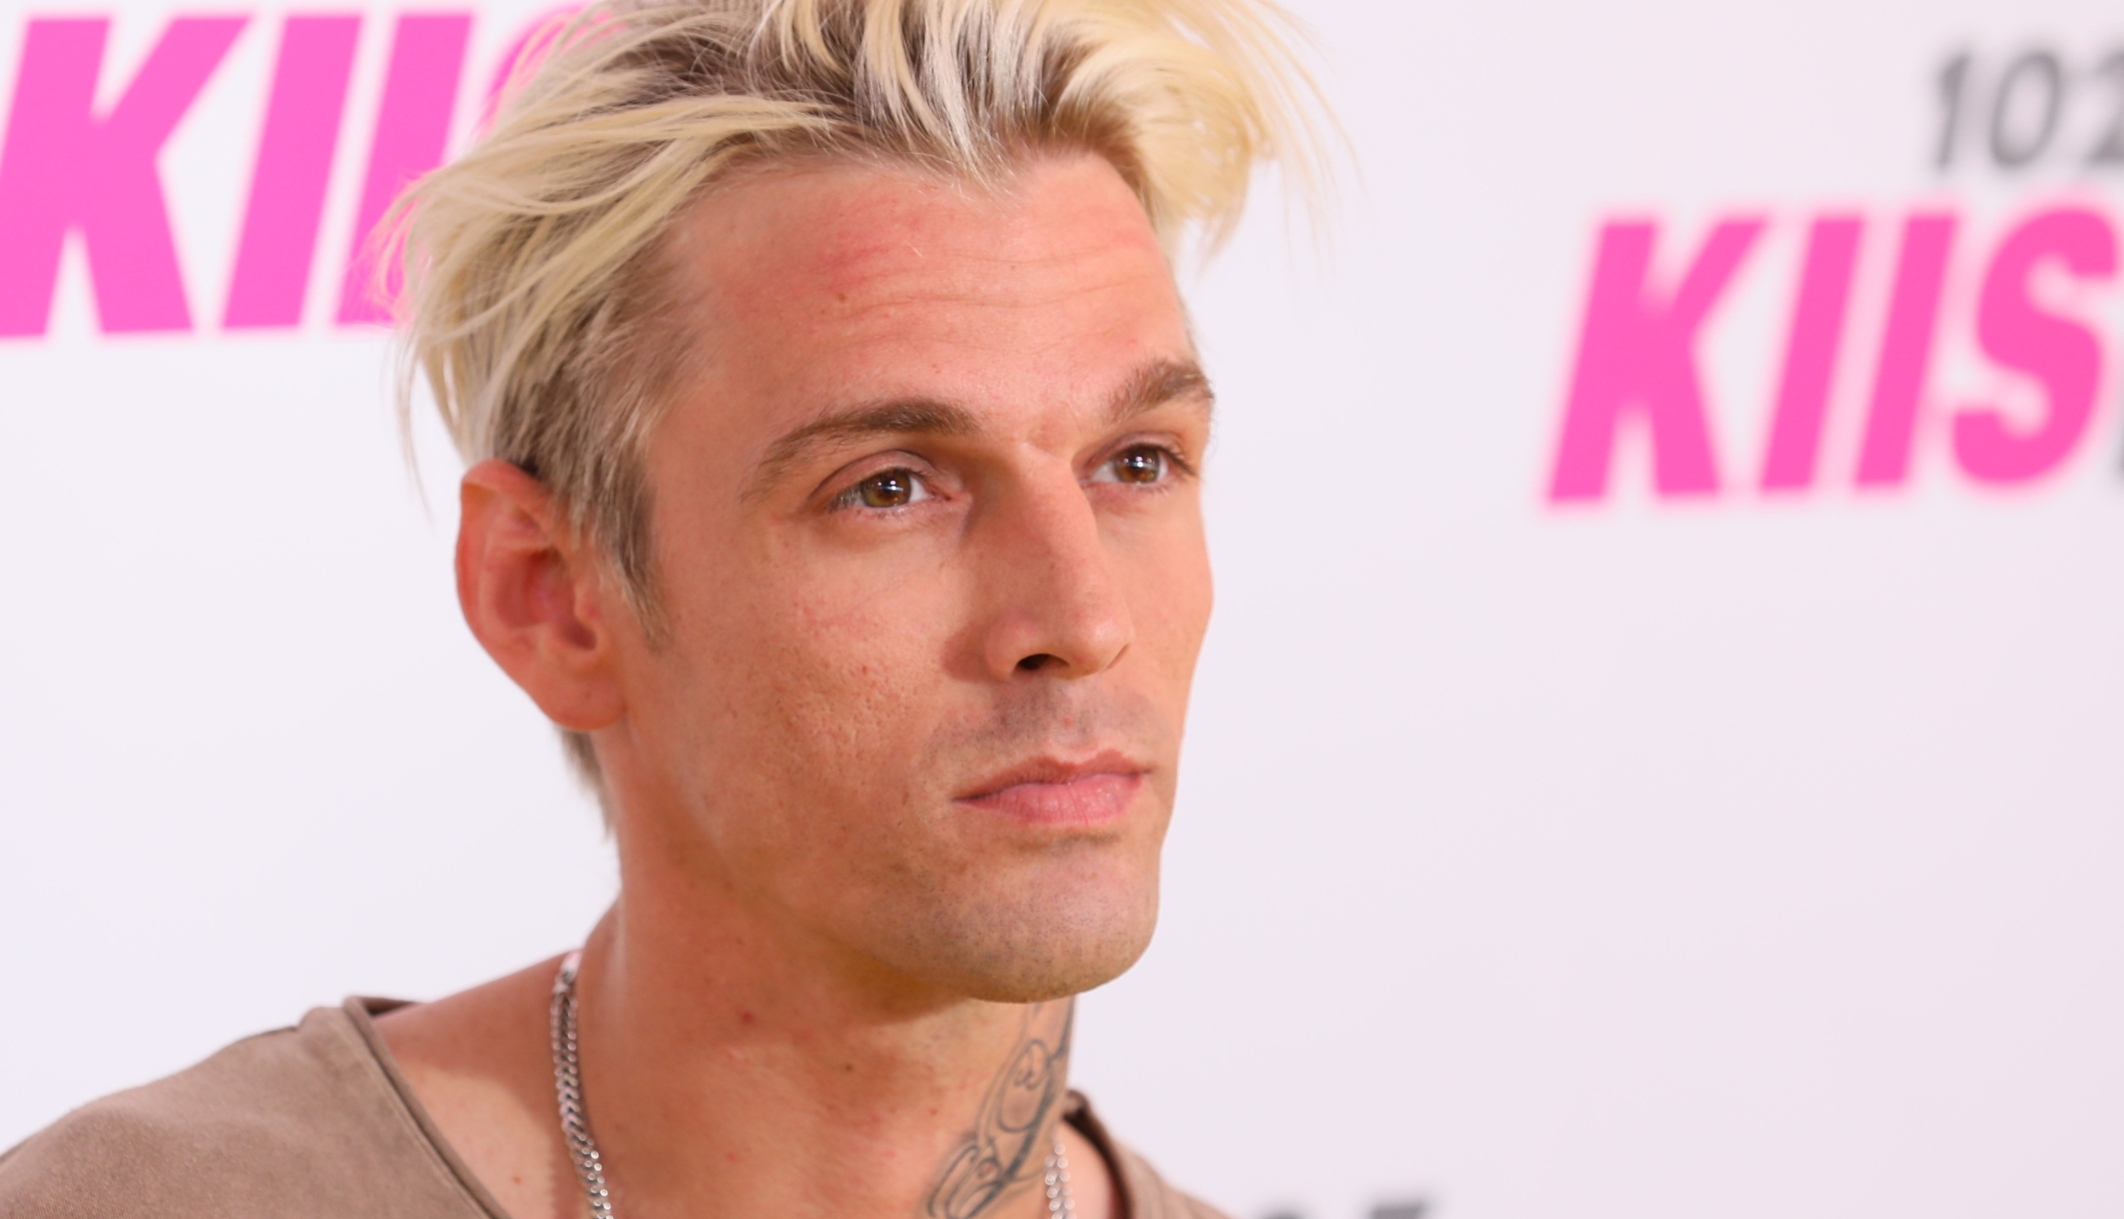 Authorities Unable To Confiscate Aaron Carter's Guns, But Are Reportedly Still Investigating